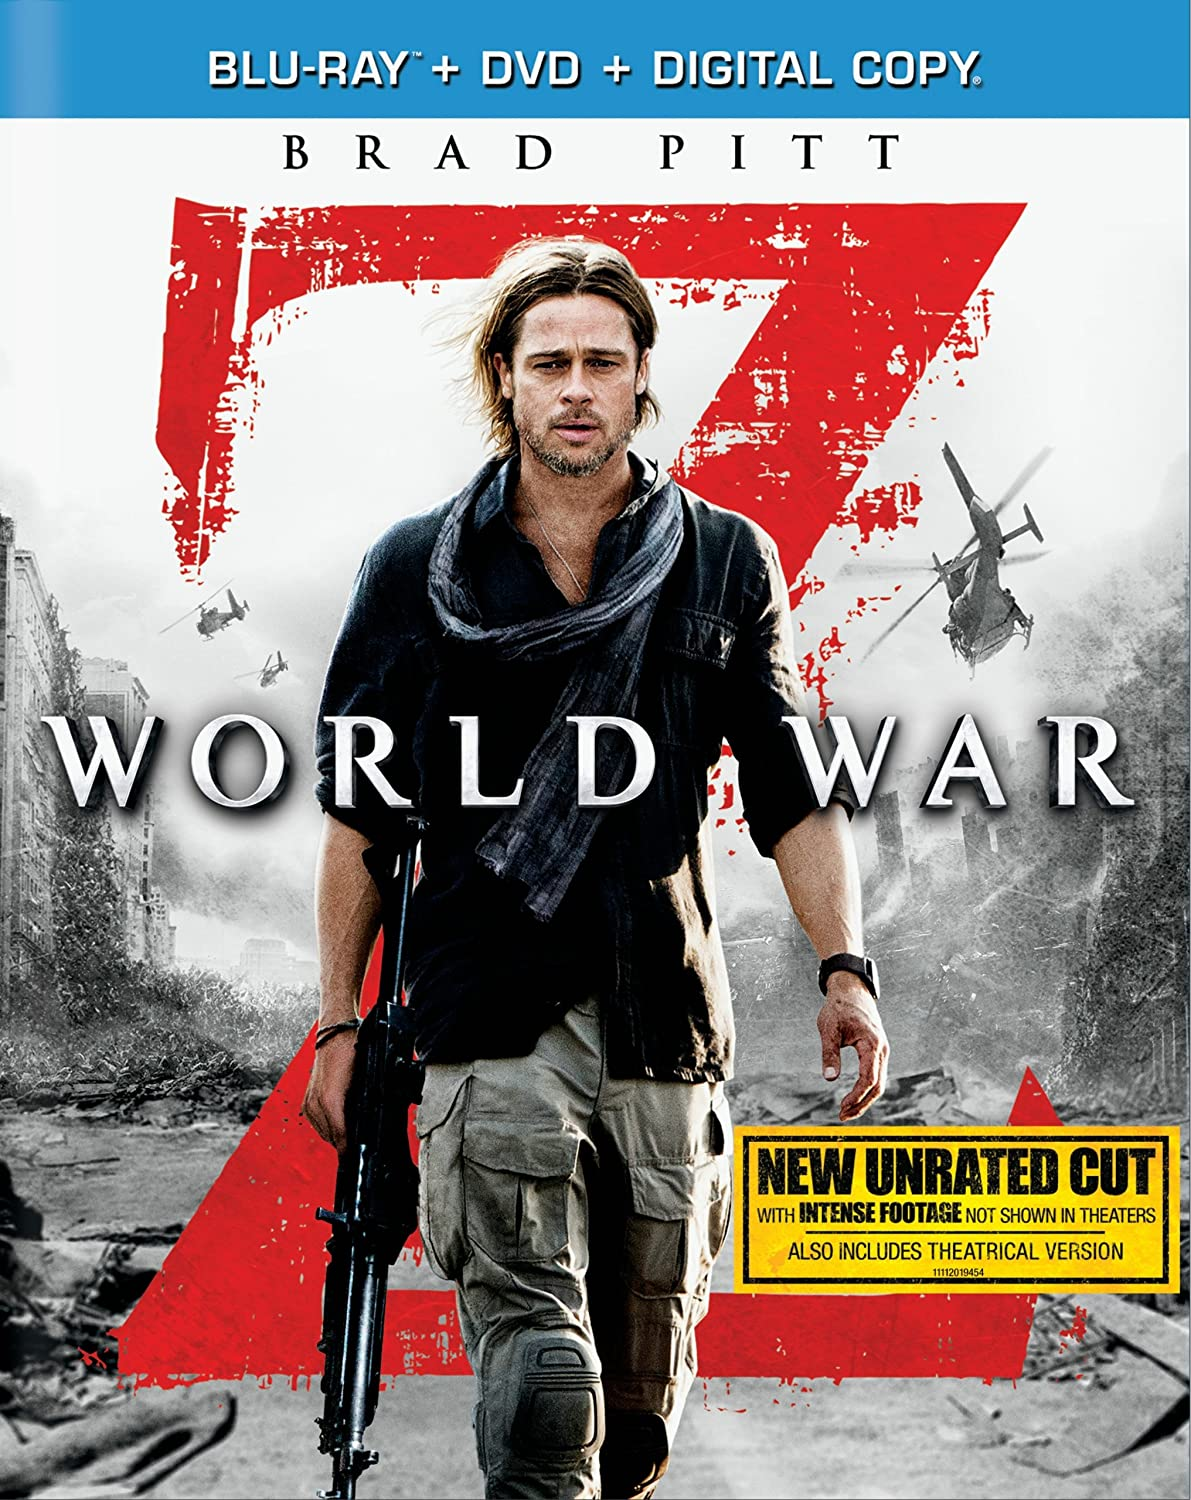 World War Z (Blu-ray + DVD + Digital Copy) $7.99